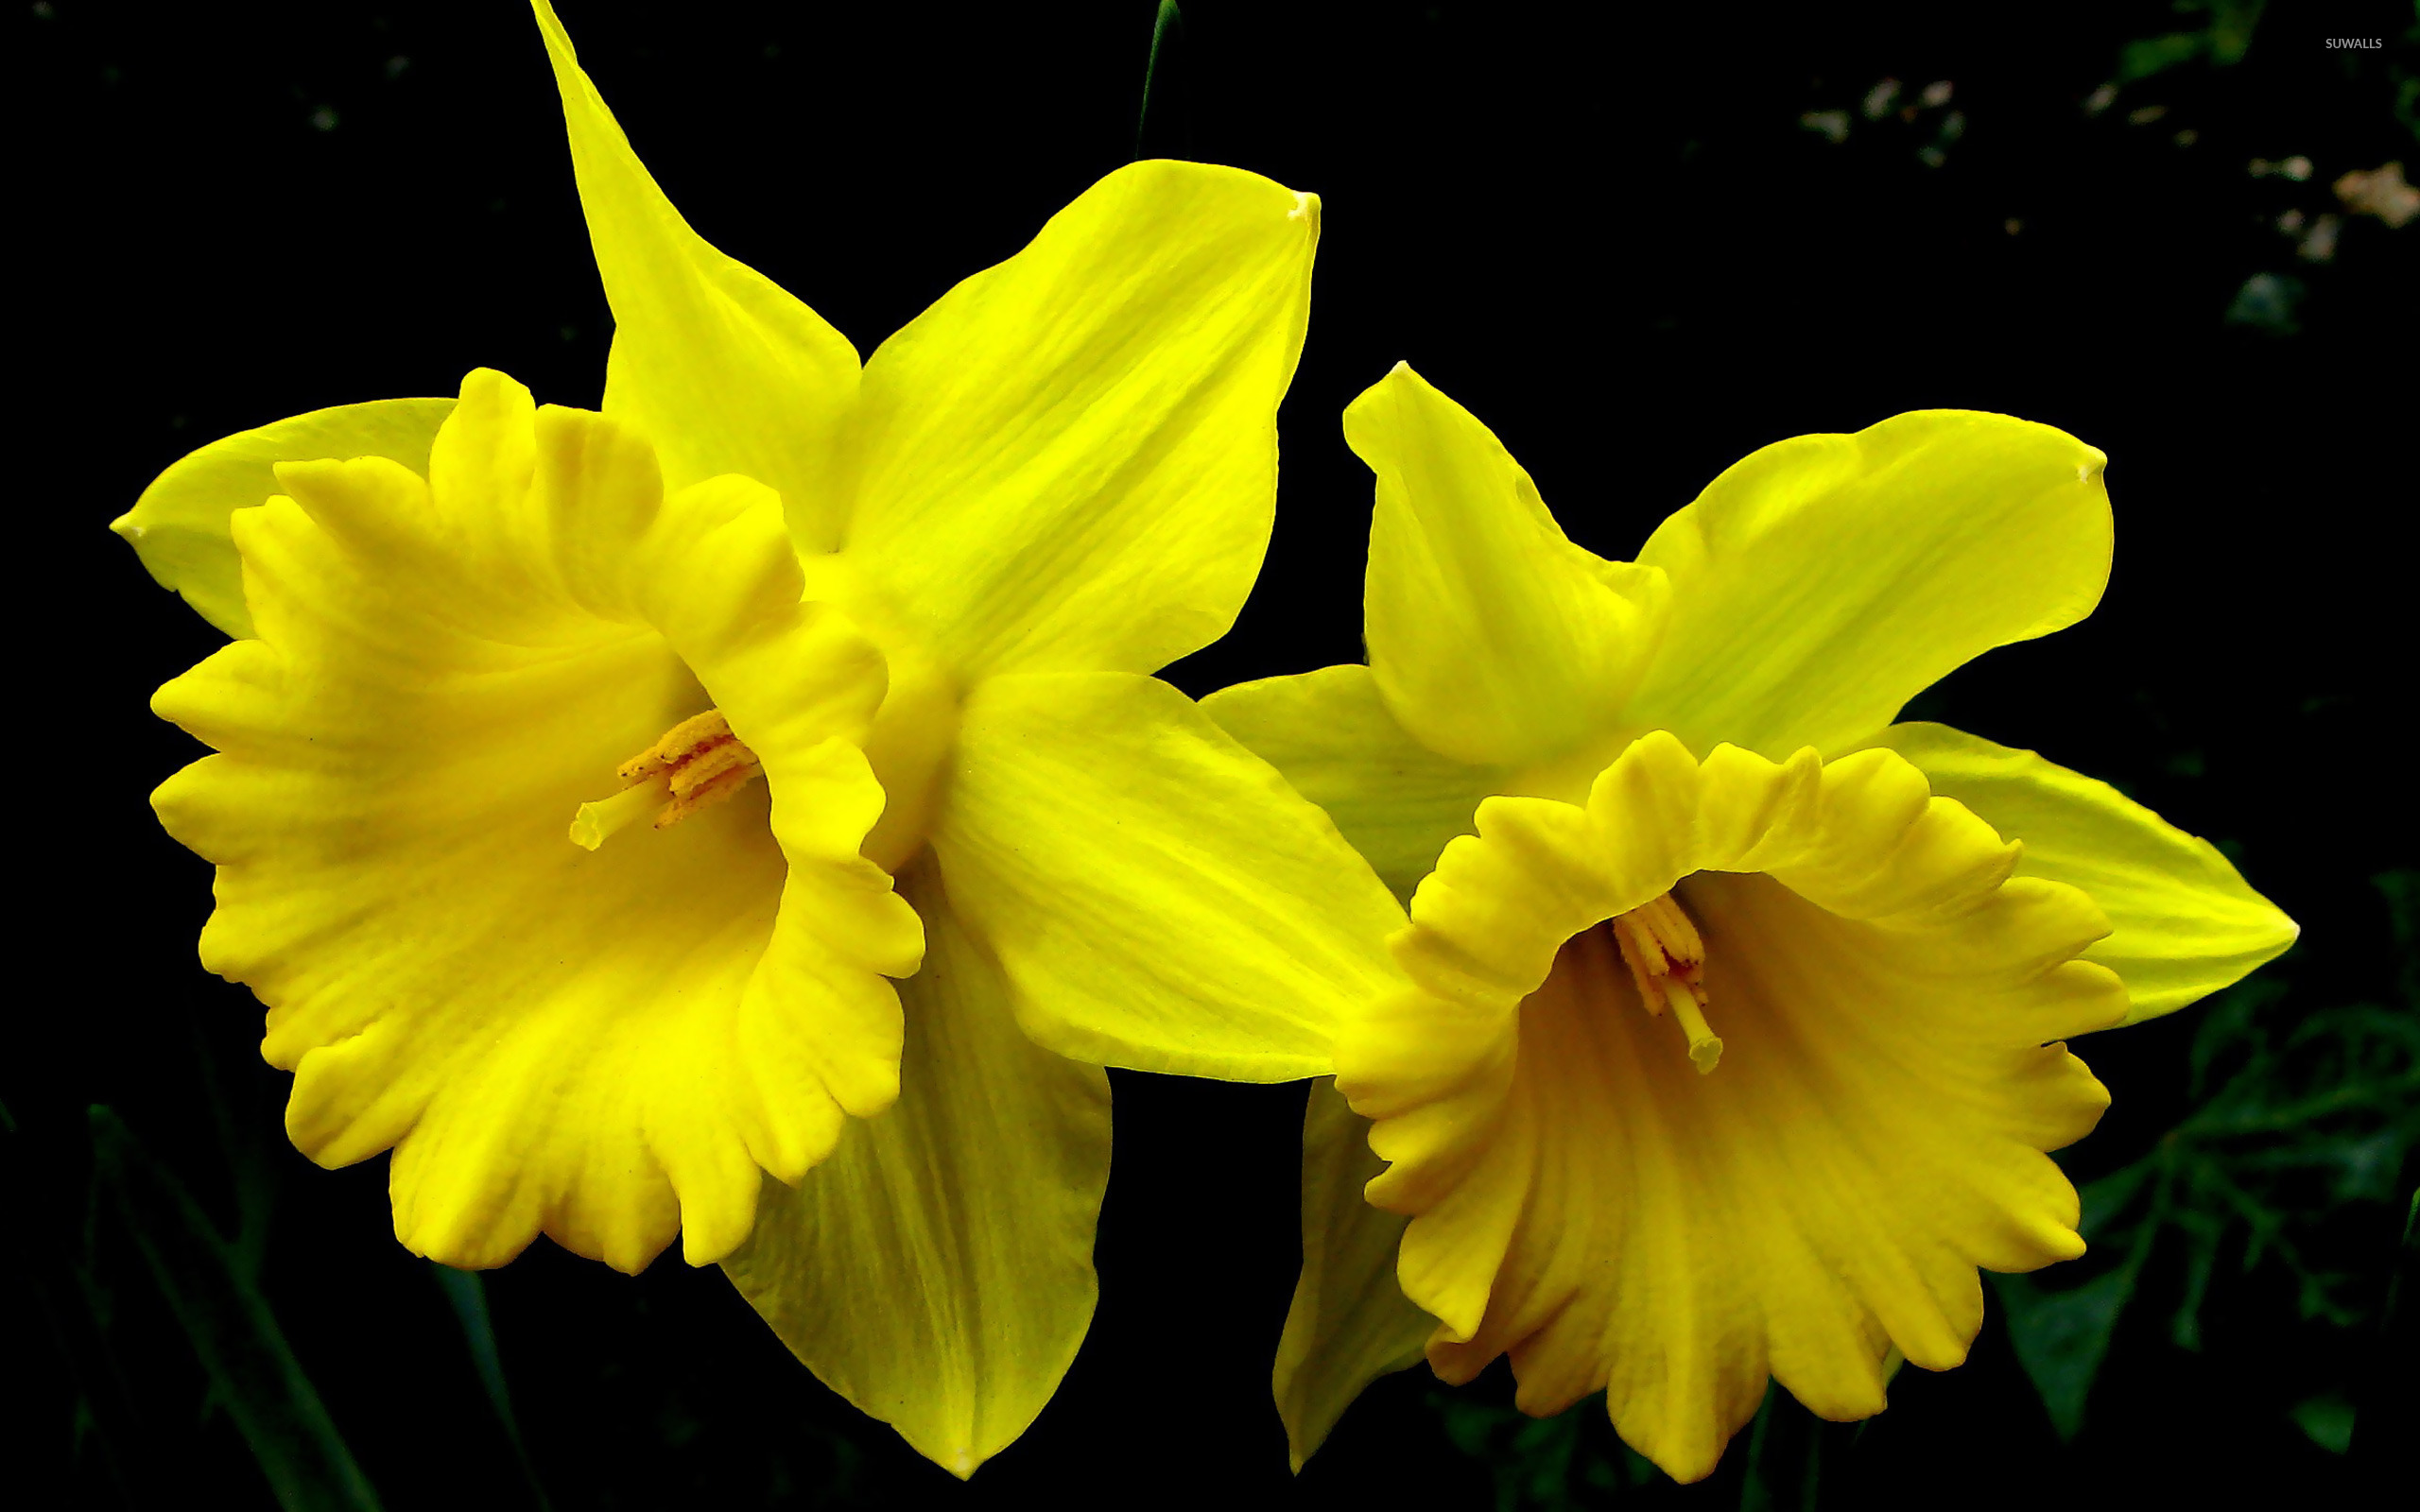 daffodils wallpaper - flower wallpapers - #11985